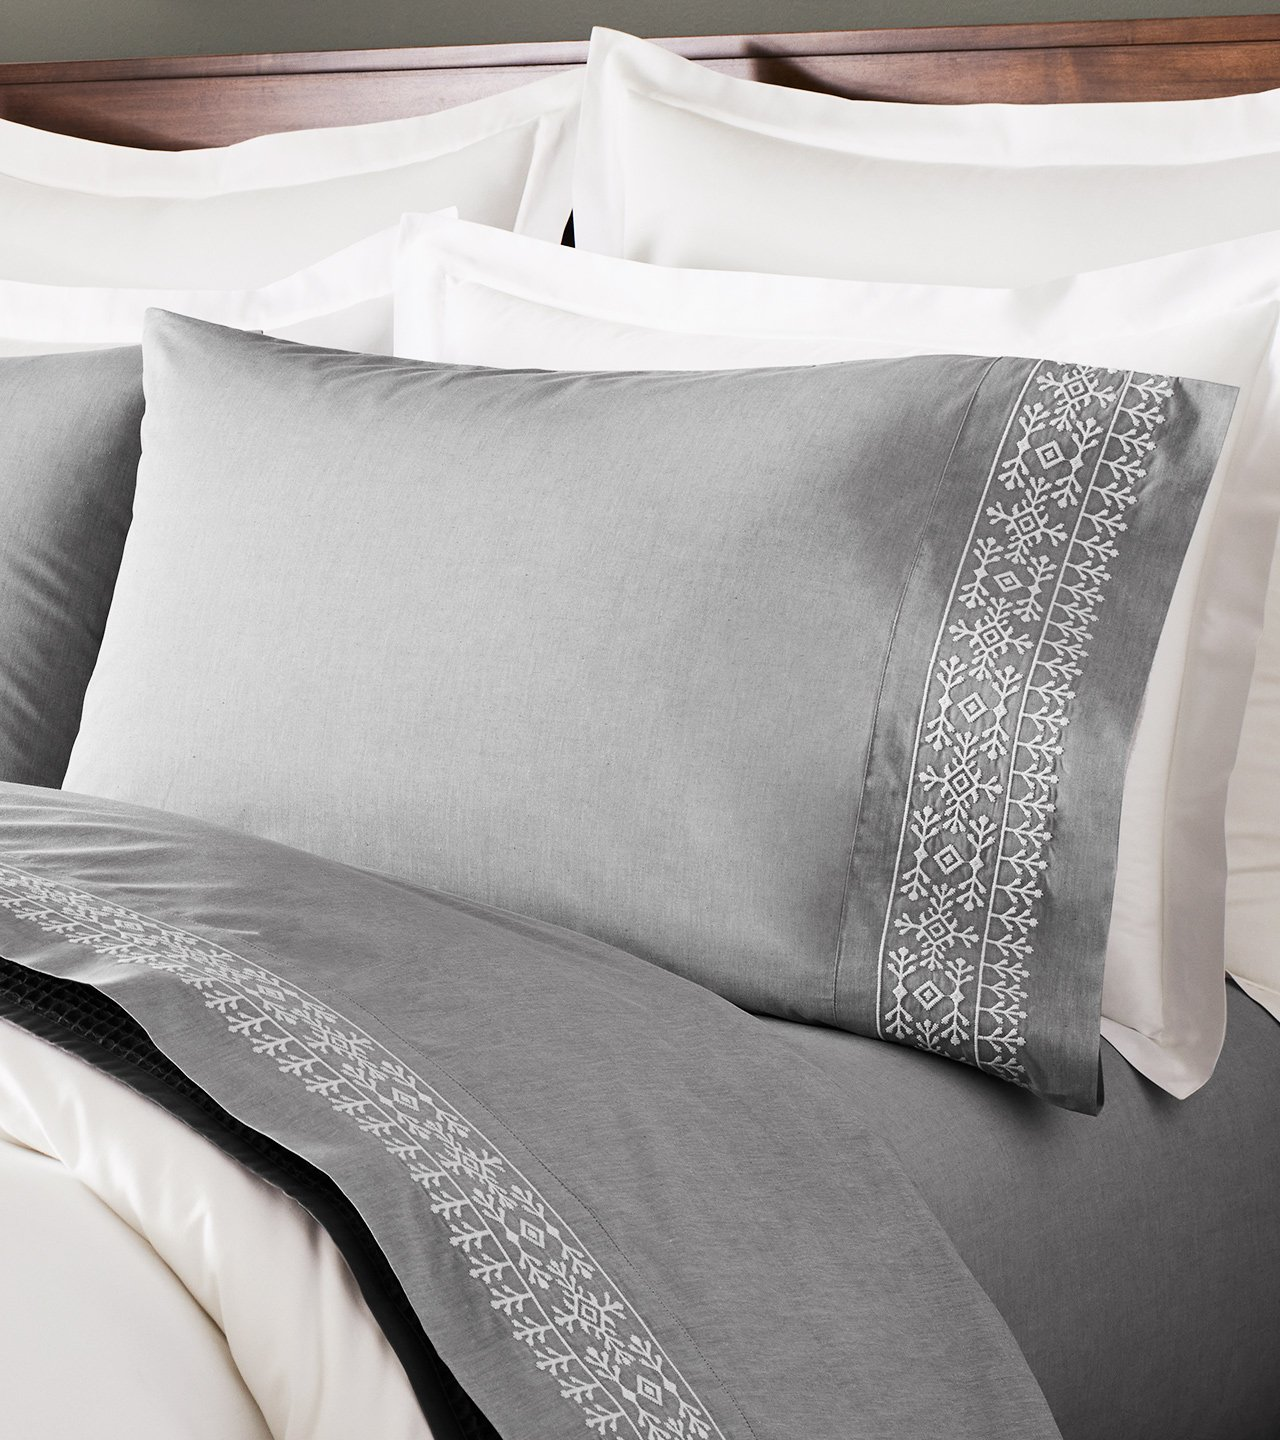 Chambray Embroidered Cottonfield Pillowcase Set | Boll & Branch ®